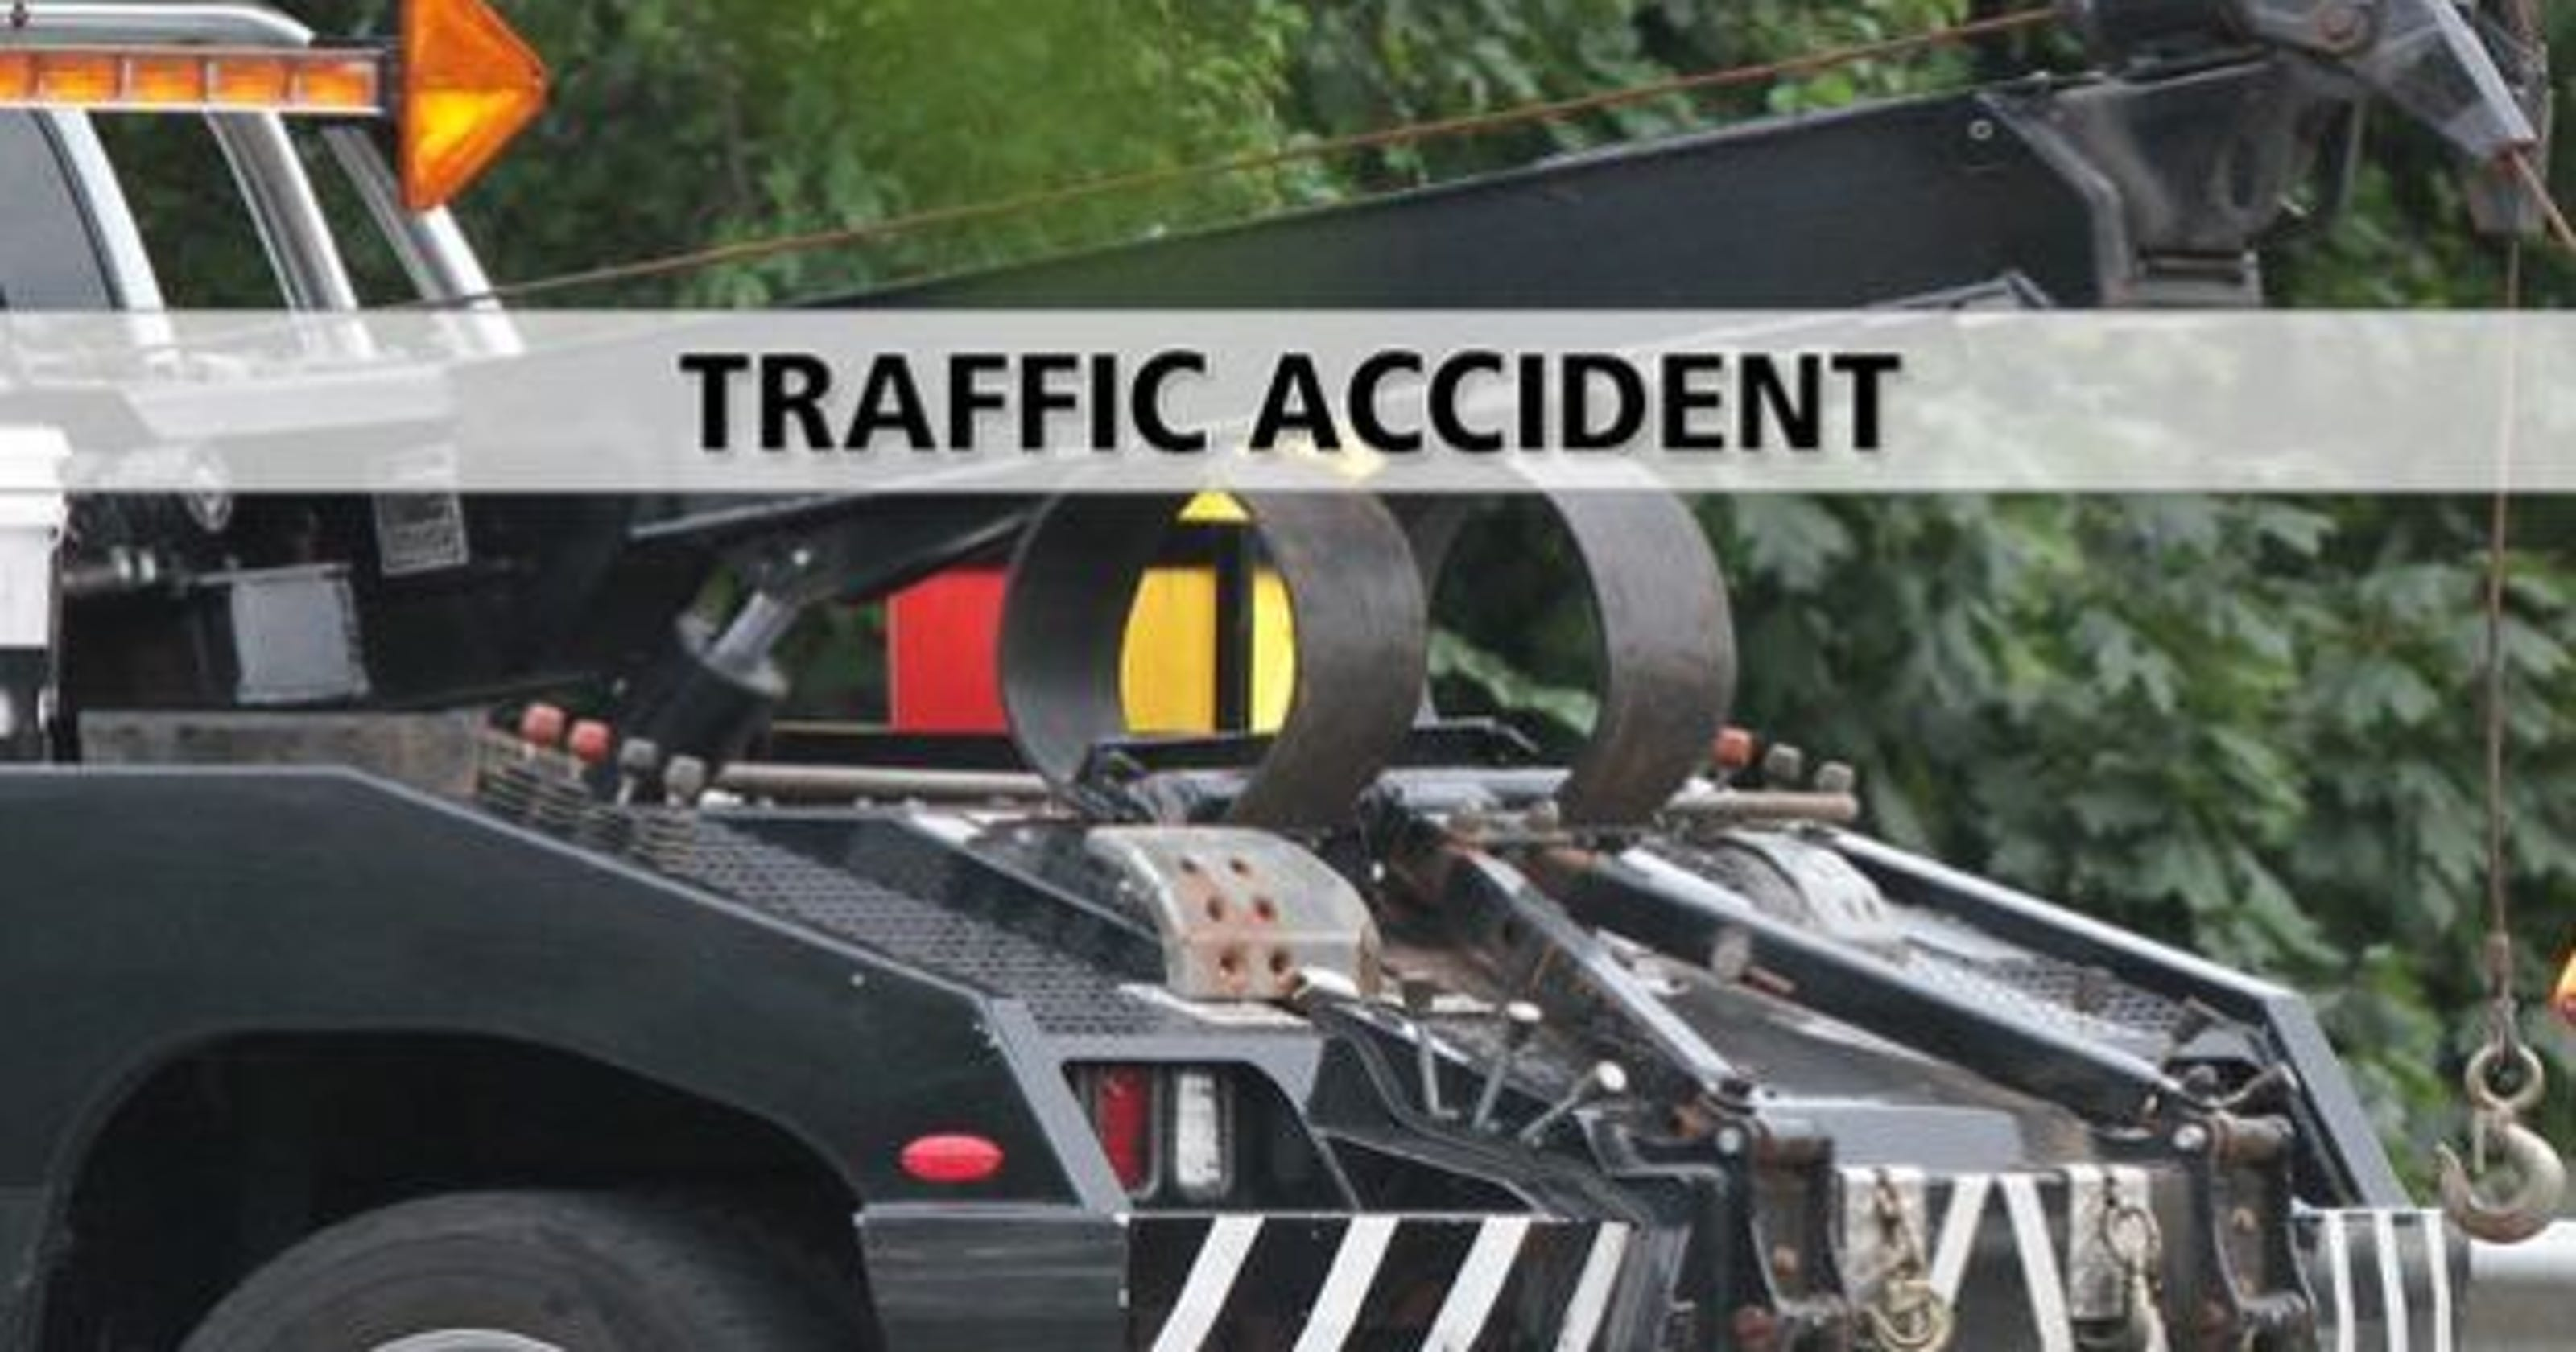 Accident kills Poughkeepsie man on Route 9 in Wappingers Falls